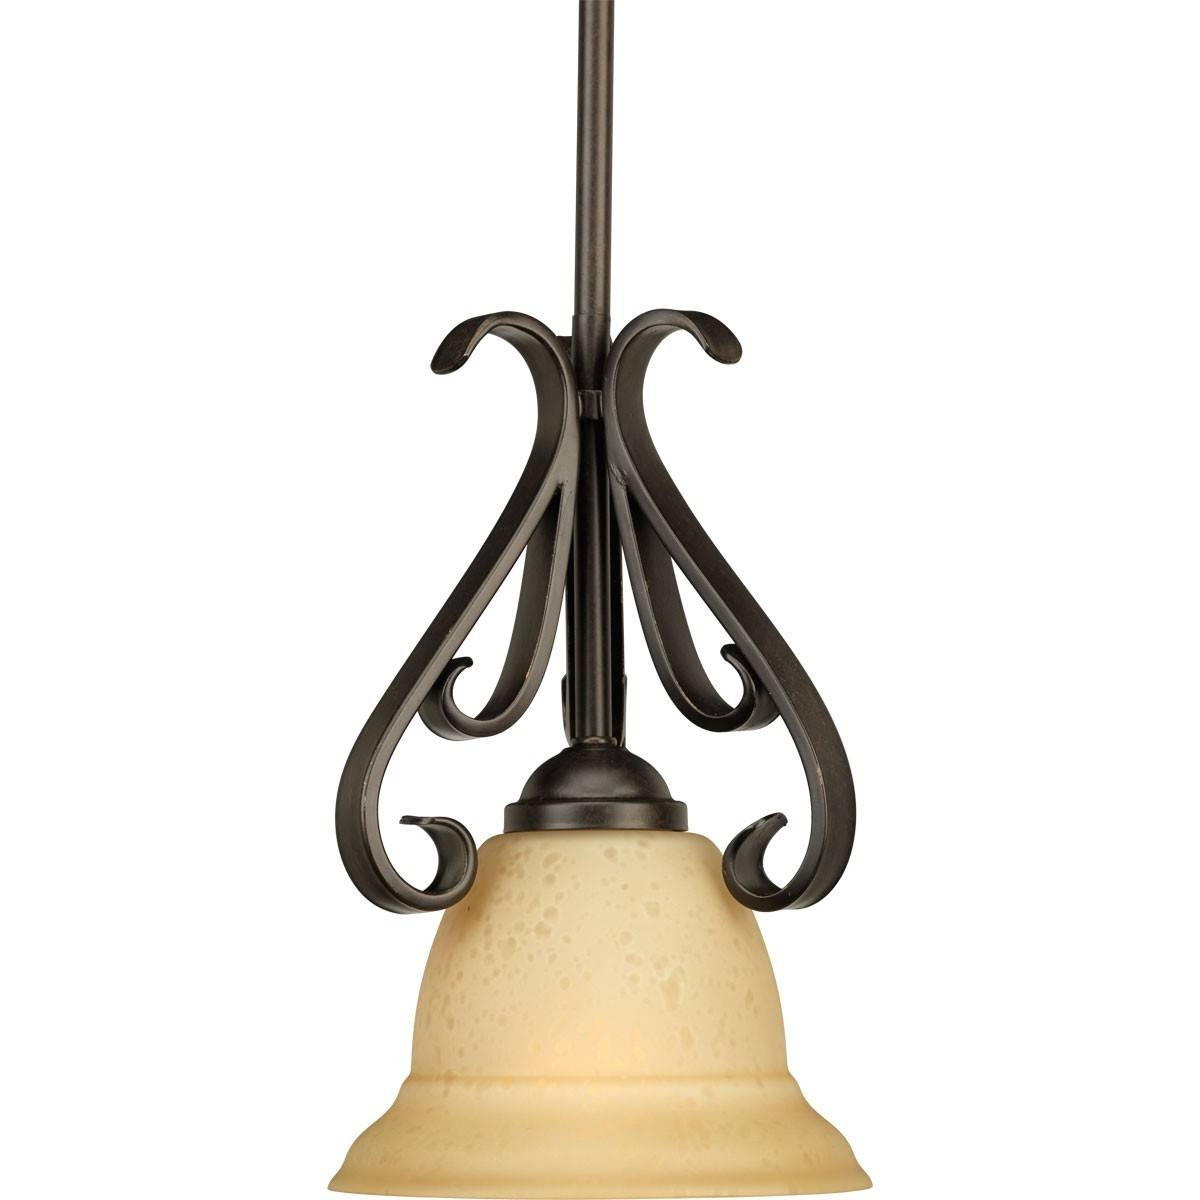 One-Light Stem-Hung Mini-Pendant Light Fixture With Tea Stained intended for Stained Glass Mini Pendant Lights (Image 12 of 15)